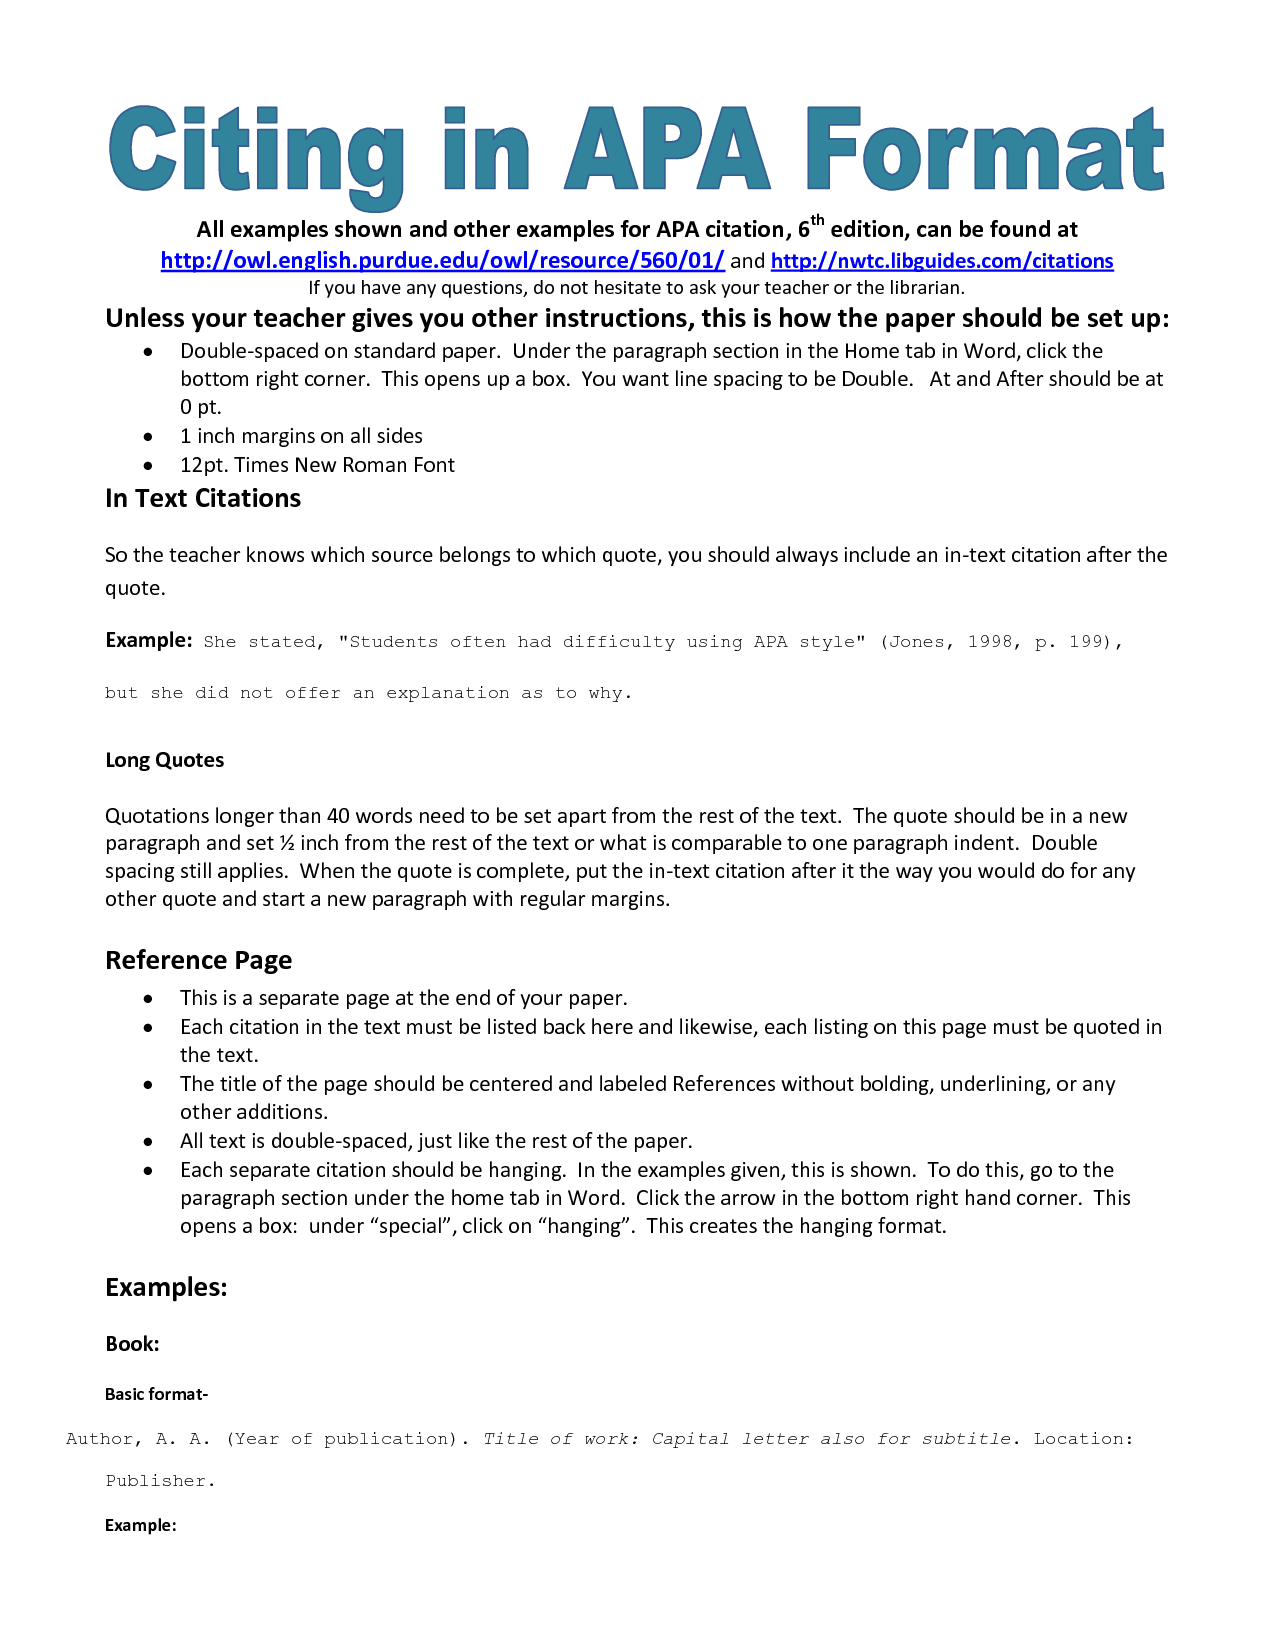 Citing in apa format in an essay look forward to hear from you in cover letter